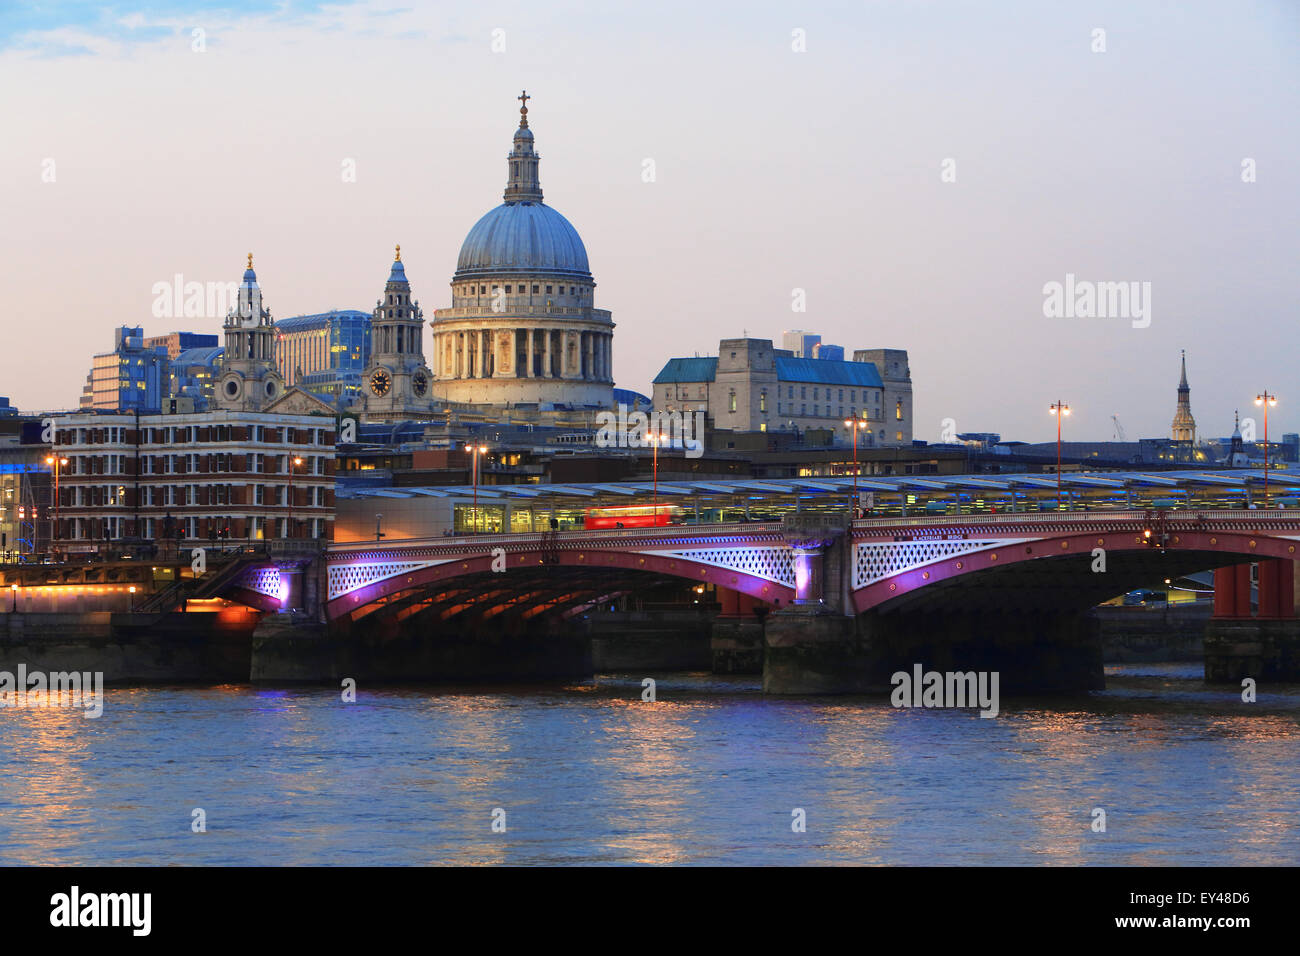 Blackfriars Railway Bridge, in front of St Paul's Cathedral, across the River Thames, at dusk, in London, UK - Stock Image